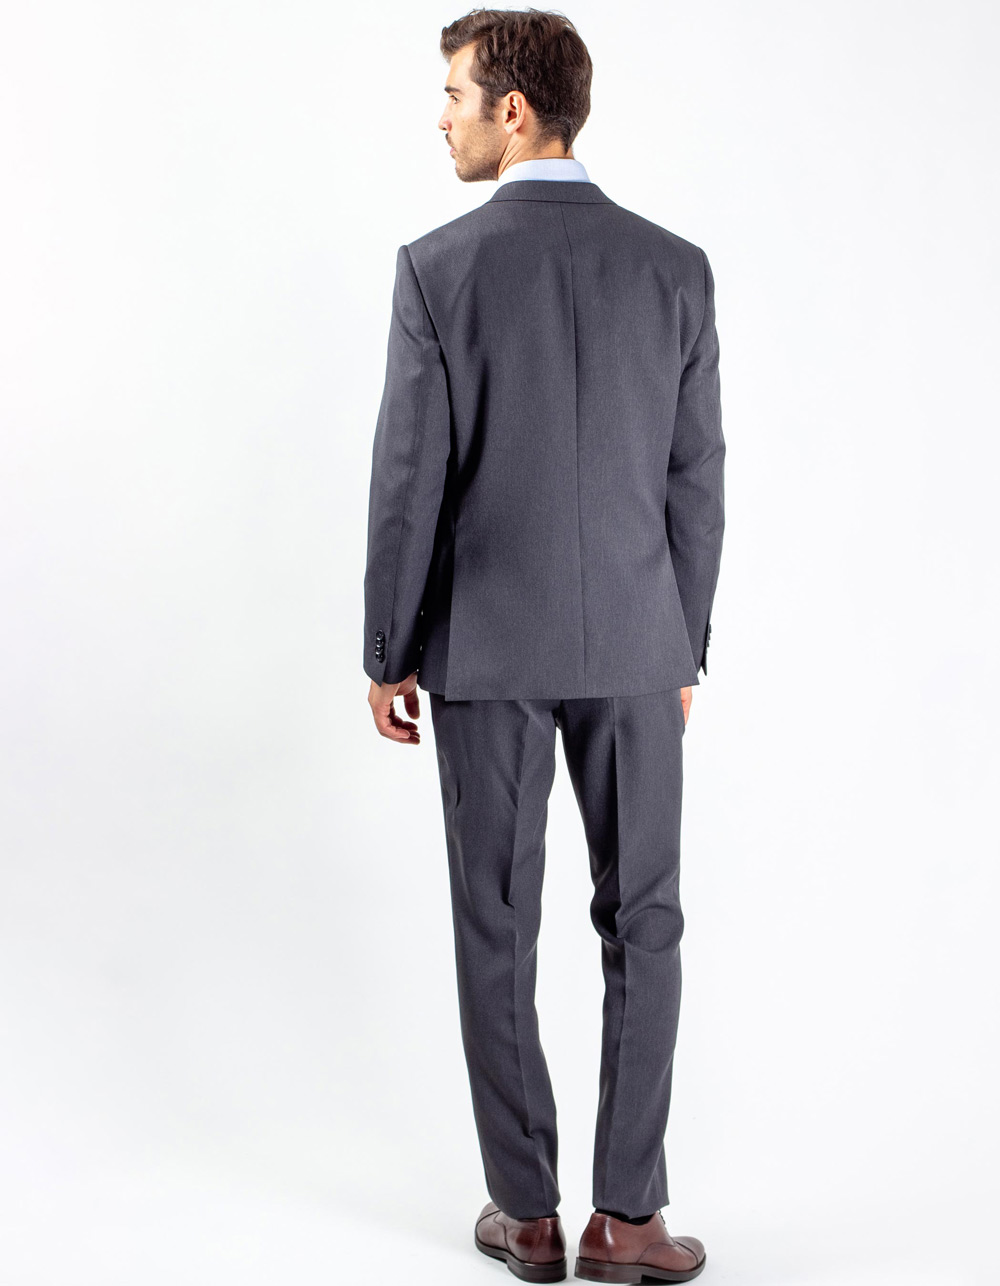 Dark grey plain suit - Backside